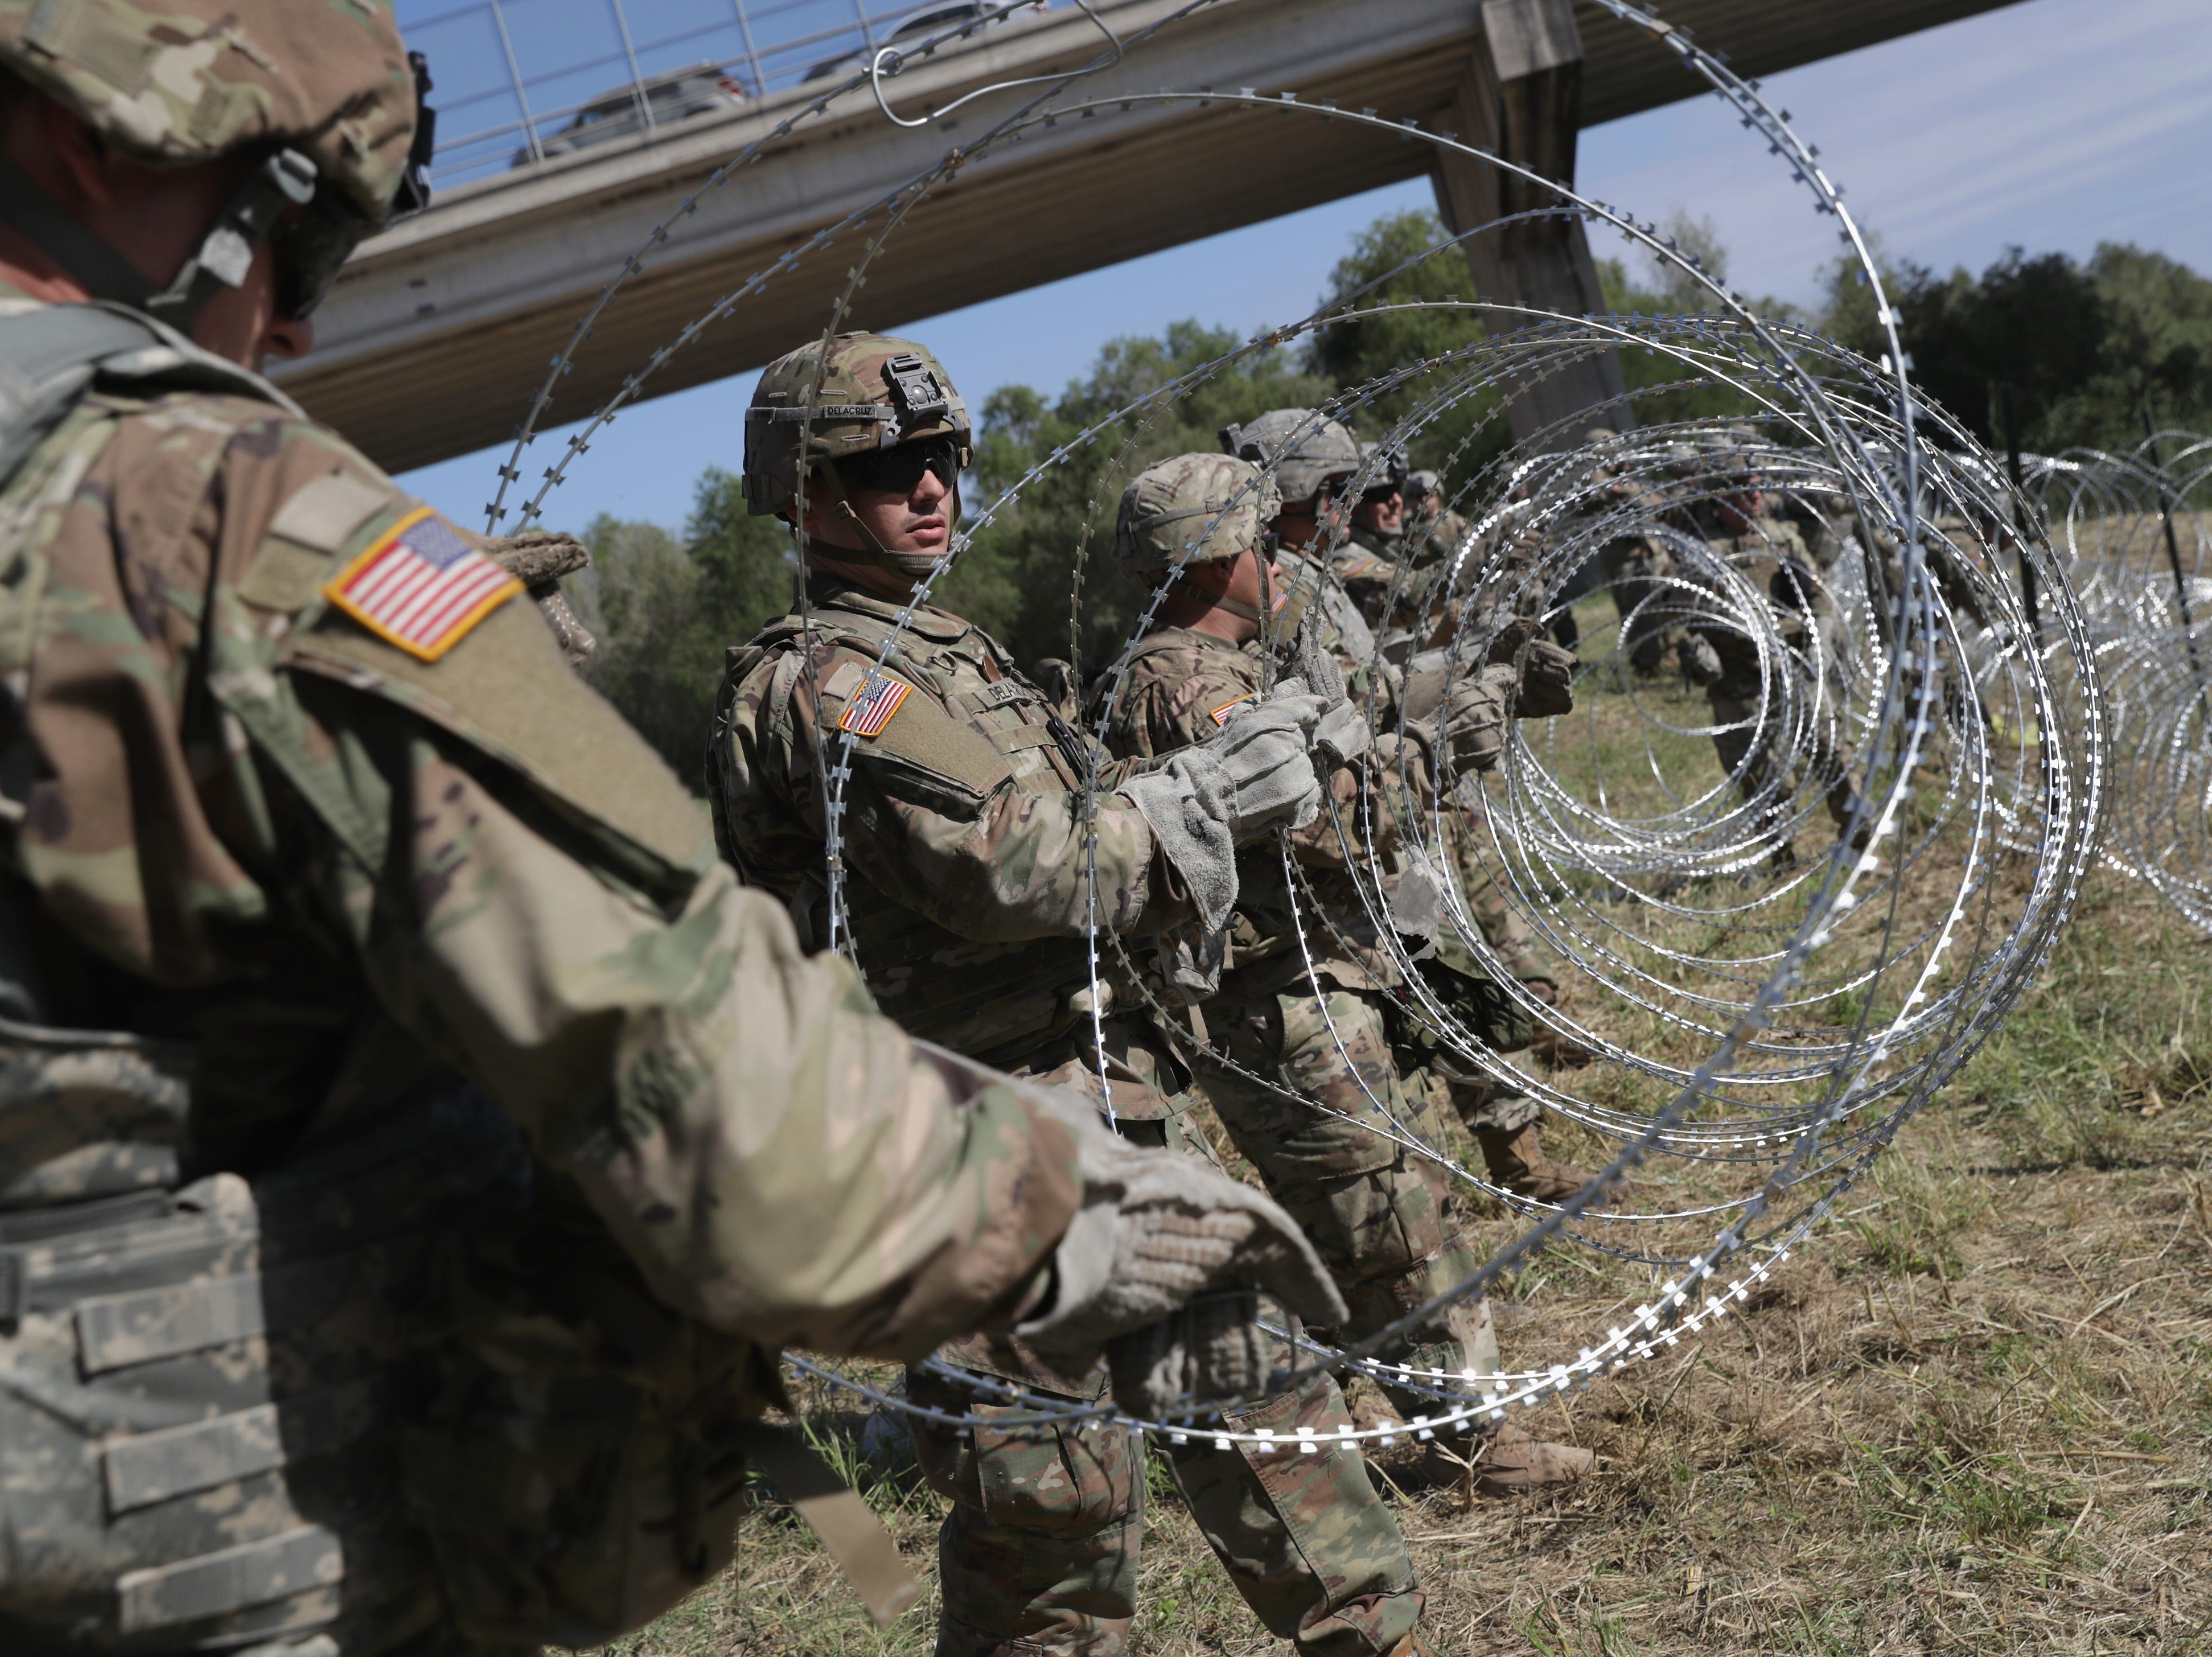 U.S. Army active duty troops from Ft. Riley, Kansas, 97th MP Battalion install protective wire along the Rio Grande at the U.S.-Mexico border on Nov. 2, 2018 in Hidalgo, Texas. U.S. President Donald Trump ordered the troops to the border to bolster security at points of entry where an immigrant caravan may attempt to cross in upcoming weeks.